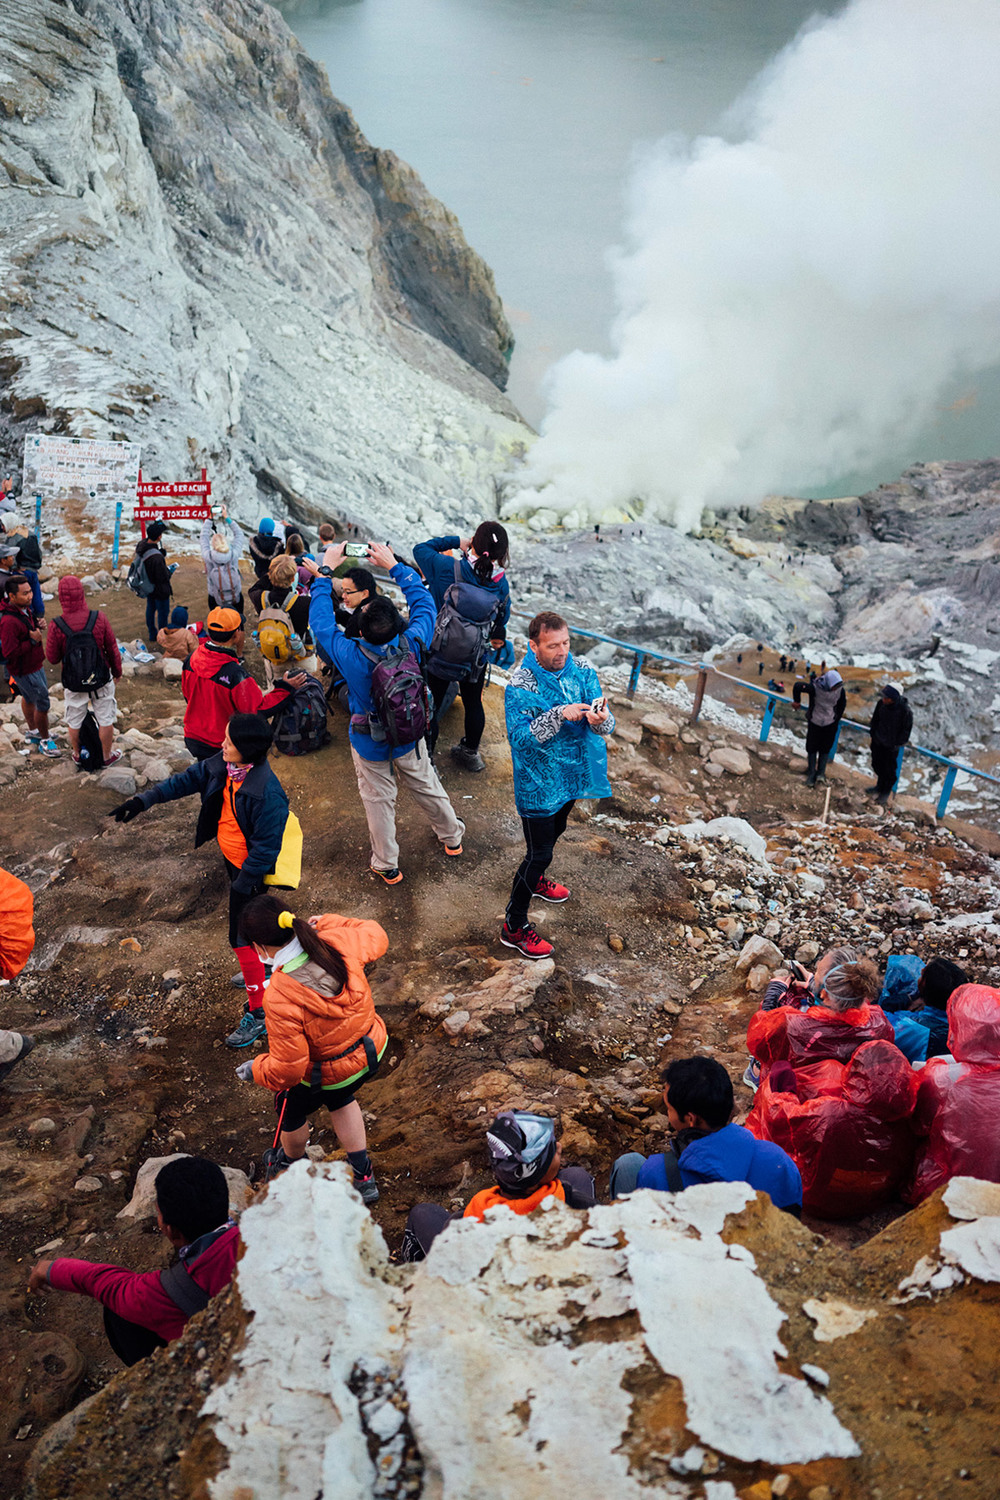 A colorful mix of local guides, miners, and hikers at the ridge of the Kawah Ijen crater, with its sulfuric gas and acidic lake below.